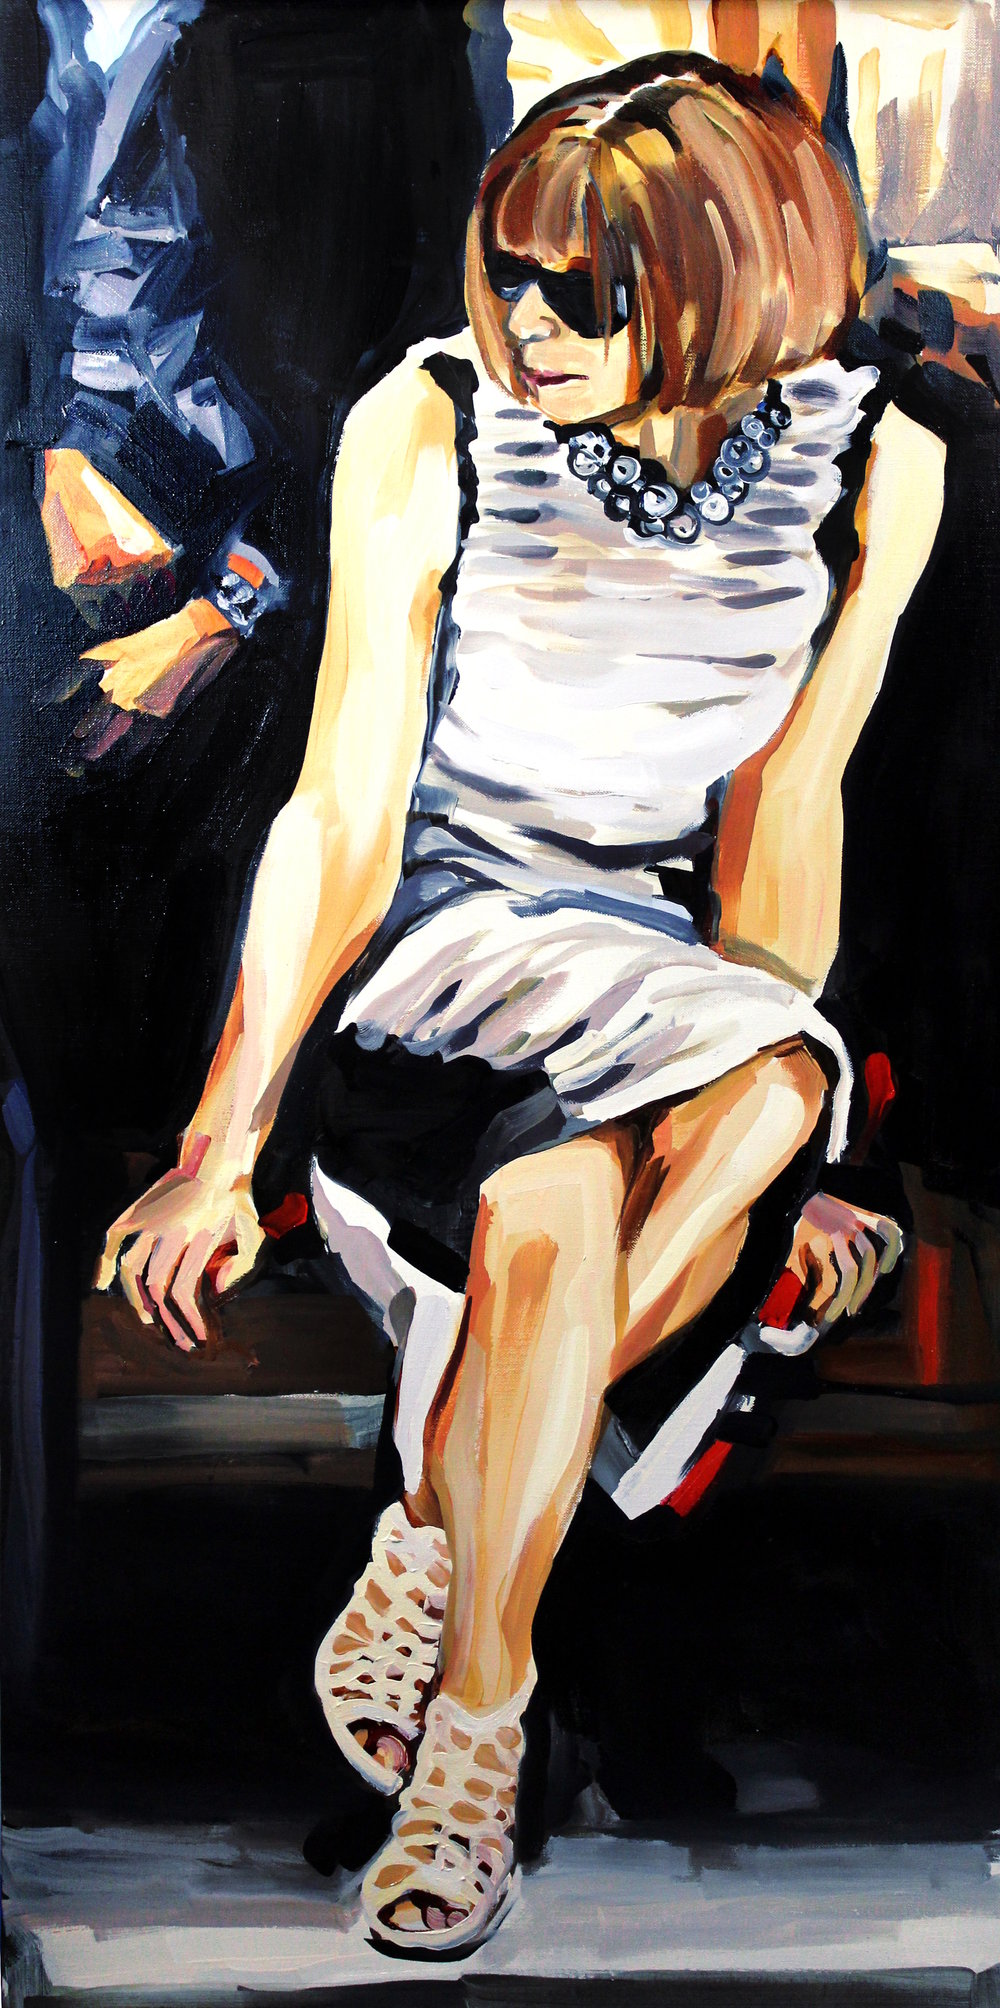 Laura Collins Anna Wintour Double Crossing Her Legs no. 5 oil on linen 24x48 2018.JPG